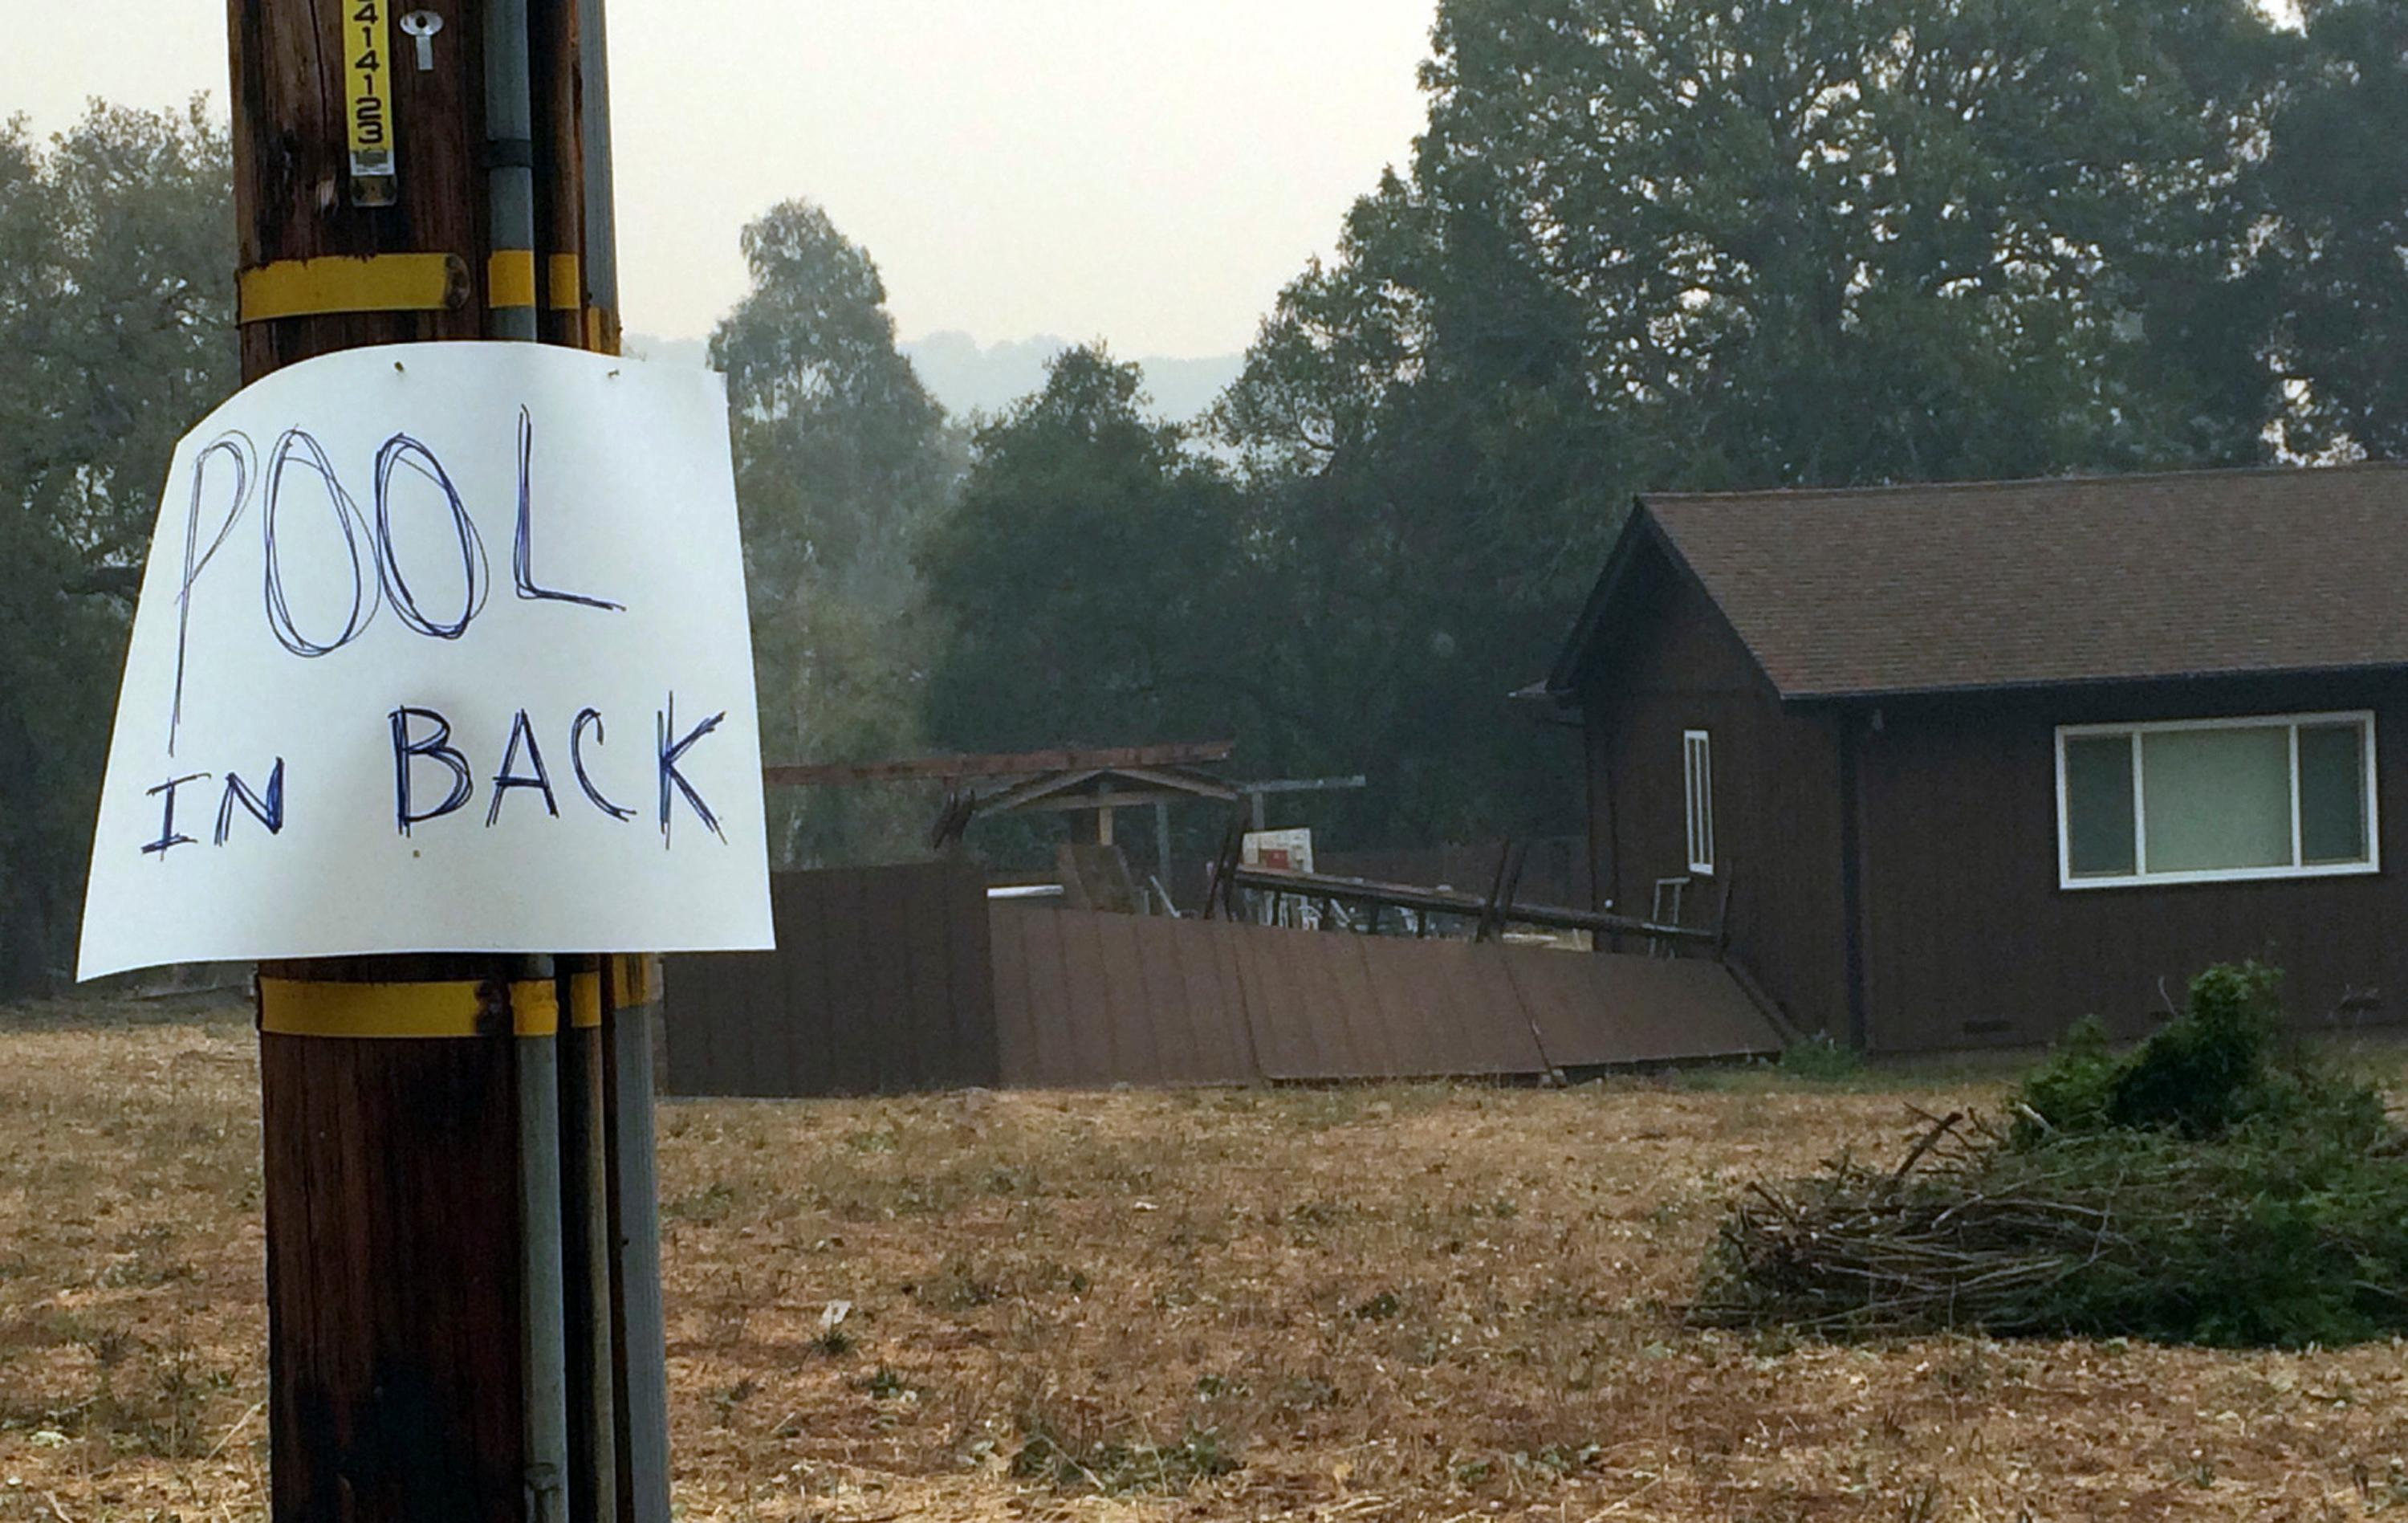 A residence in the hills above Sonoma, Calif., has a posted sign alerting people to an available pool if needed to shelter from wildfires Friday, Oct. 13, 2017. Stories of some people who lived through the inferno by standing in backyard swimming pools this week is spreading. (AP Photo/Ellen Knickmeyer)